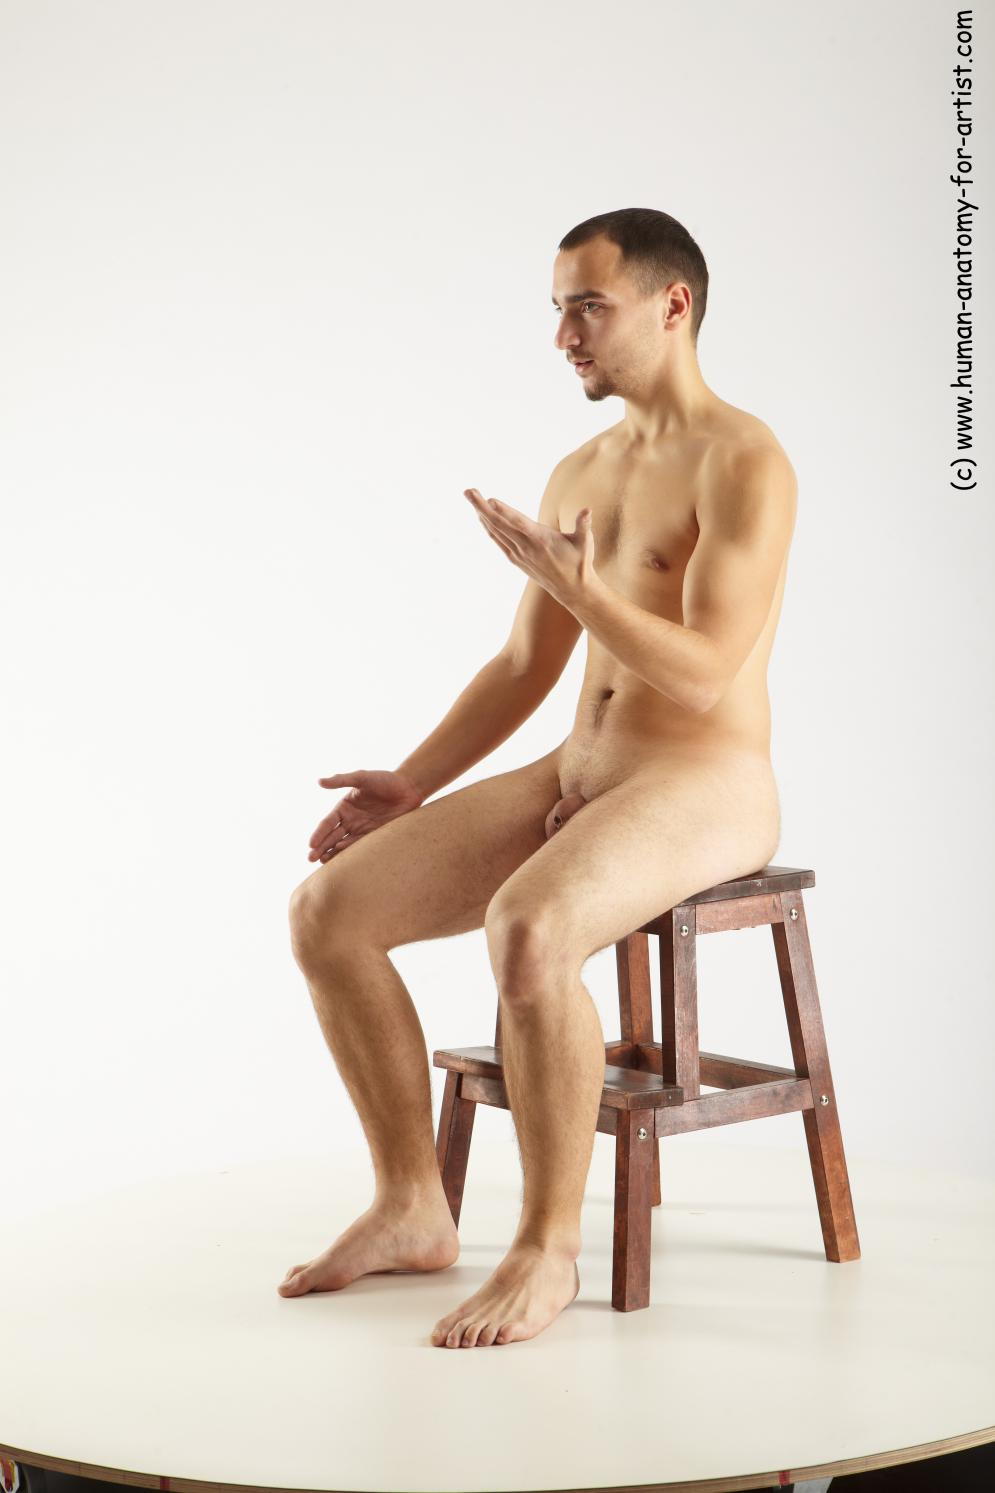 Image from Male sitting poses - prokop_sitting_02.jpg